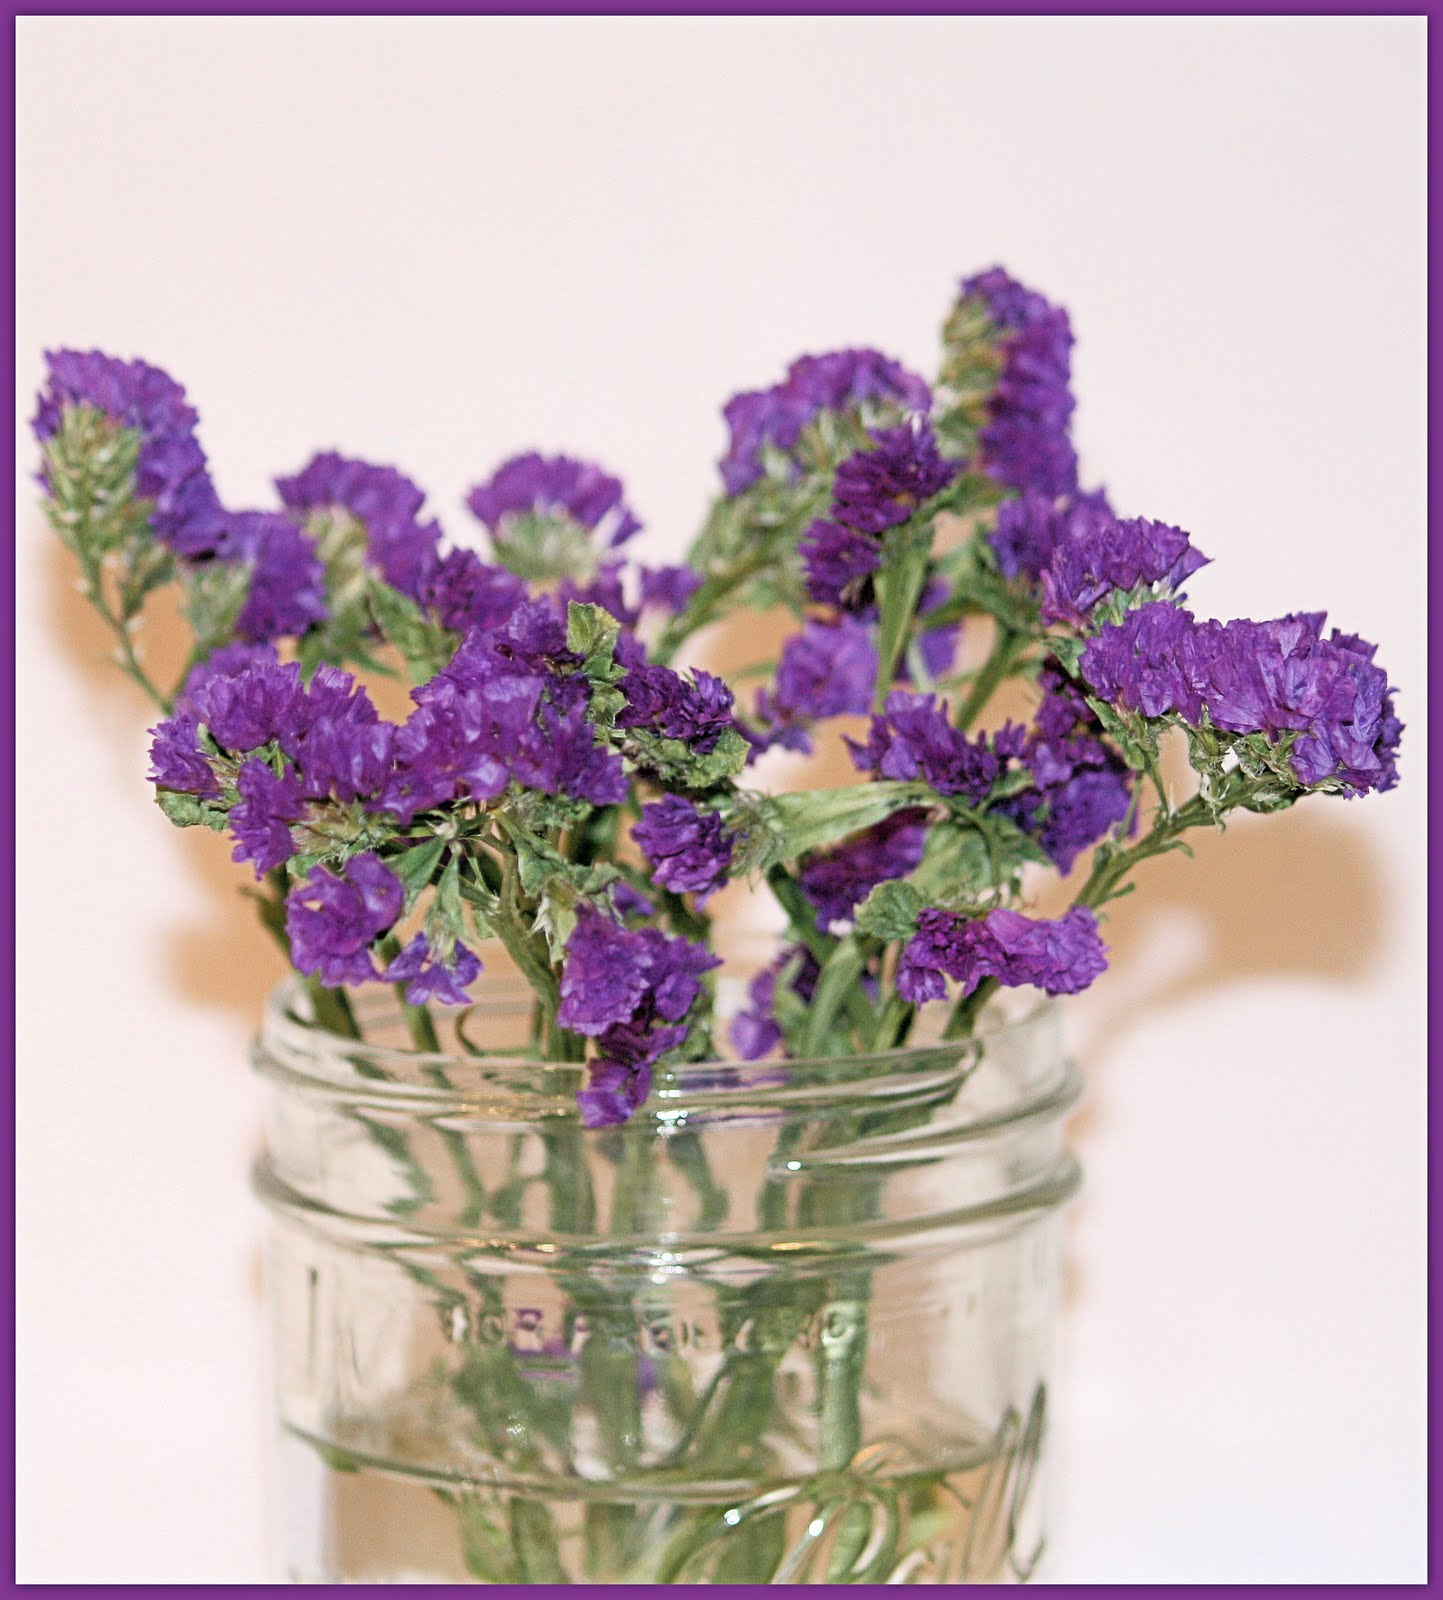 Names purple flowers florist purple flower types with pictures types of blue u purple flowers mightylinksfo